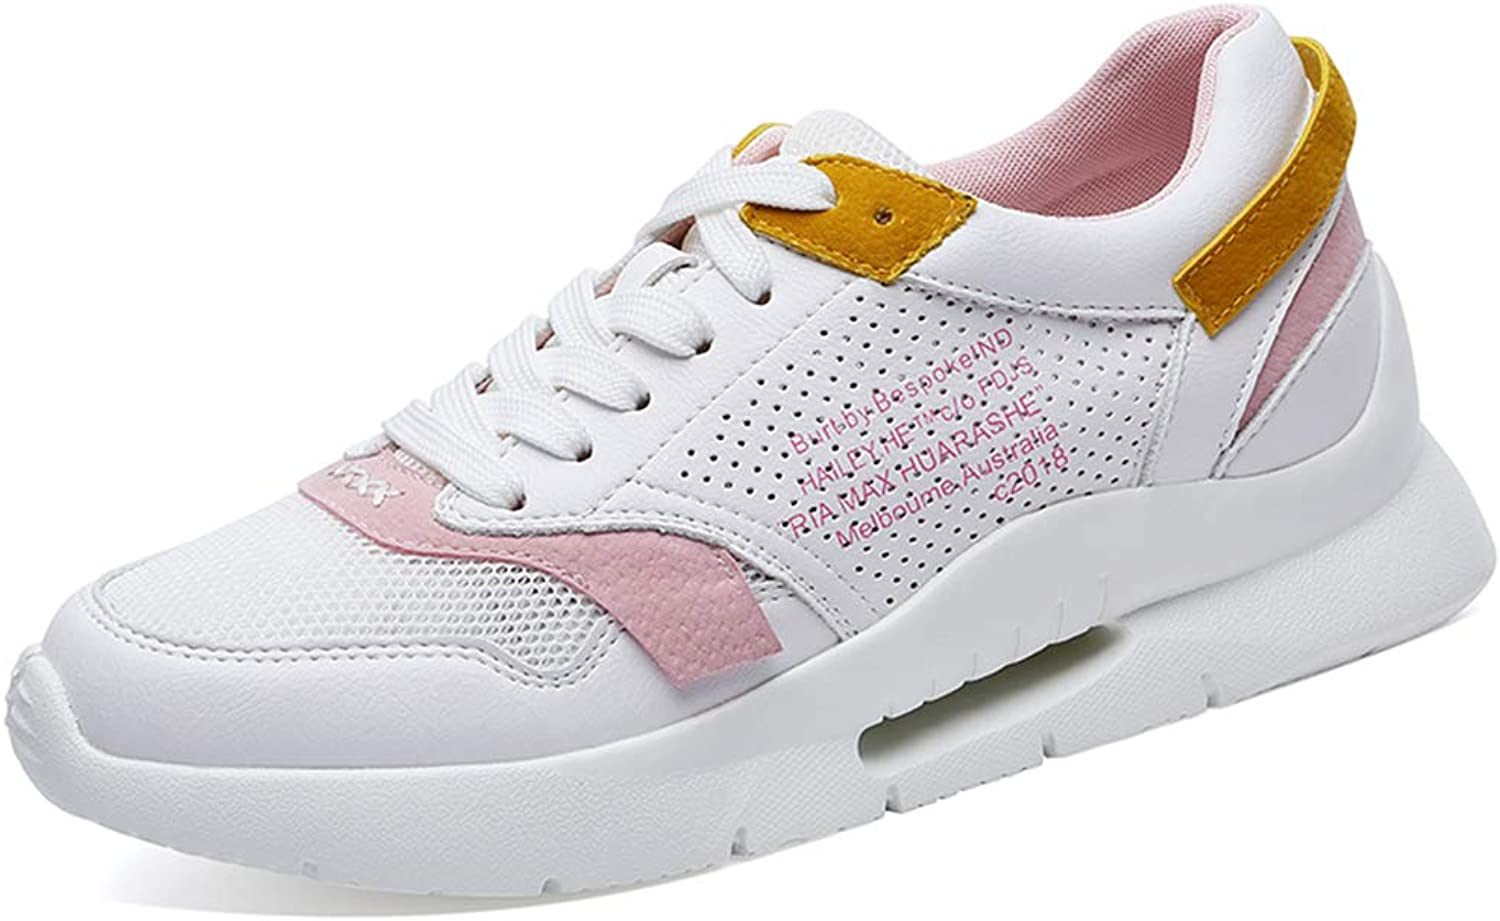 Zarbrina Low Top Platform Sneakers for Women Workout Fitness Round Toe Foam Sole Increased Height Casual shoes